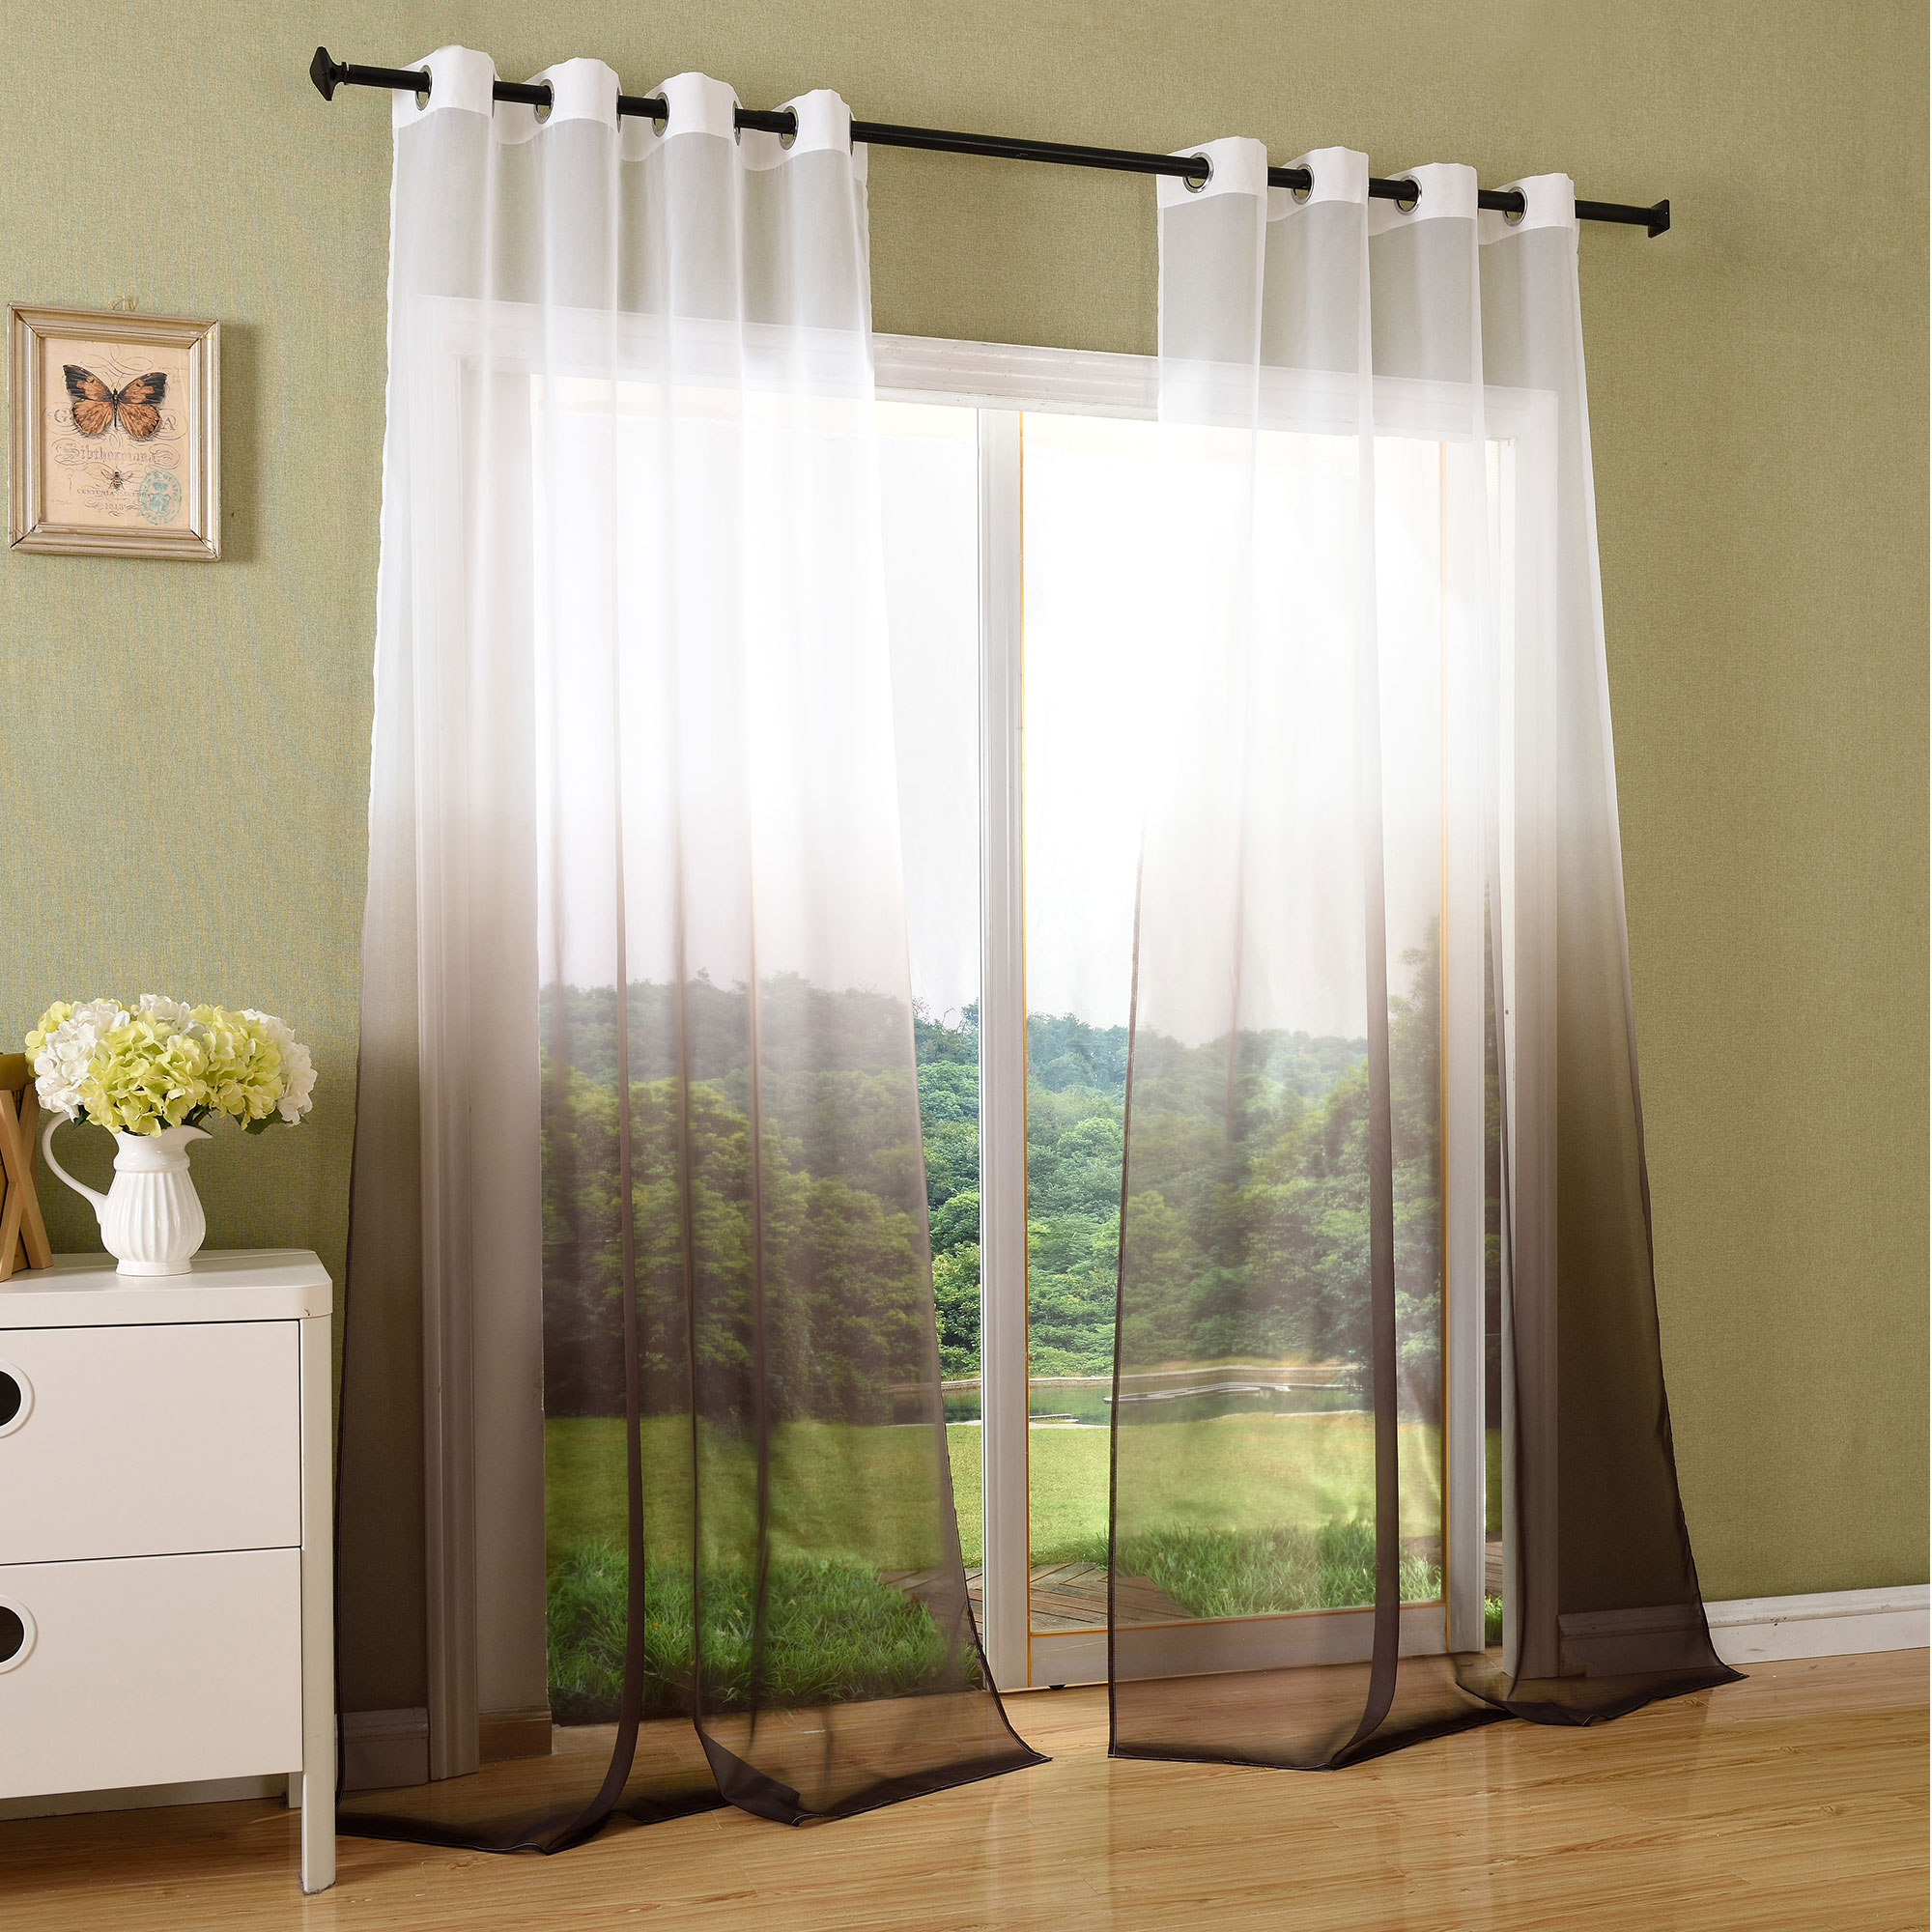 vorhang transparent schal sen gardine voile farbverlauf 204202 ebay. Black Bedroom Furniture Sets. Home Design Ideas